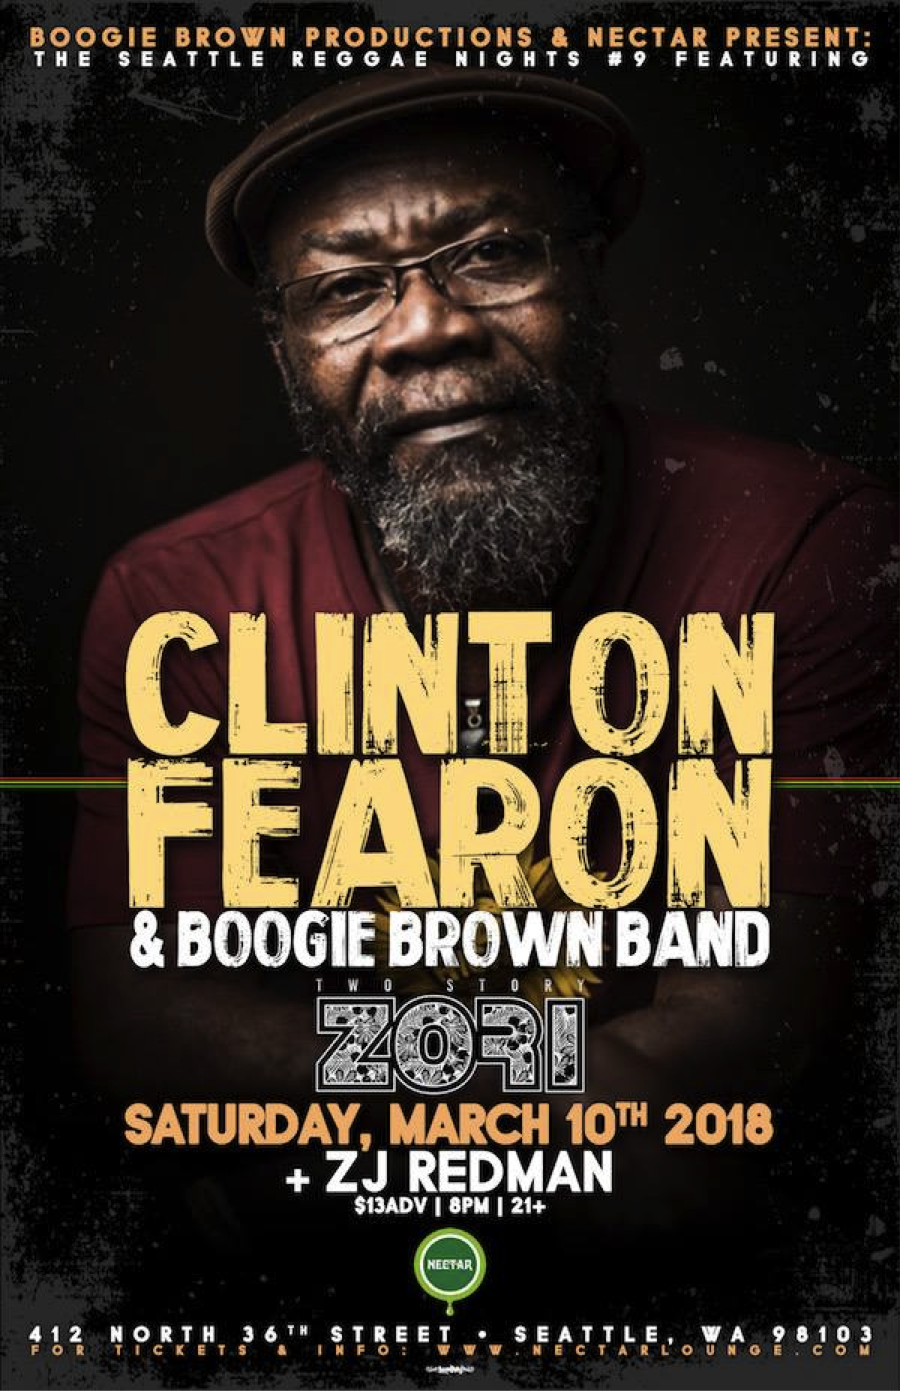 Clinton Fearon & Boogie Brown Band at Nectar Lounge